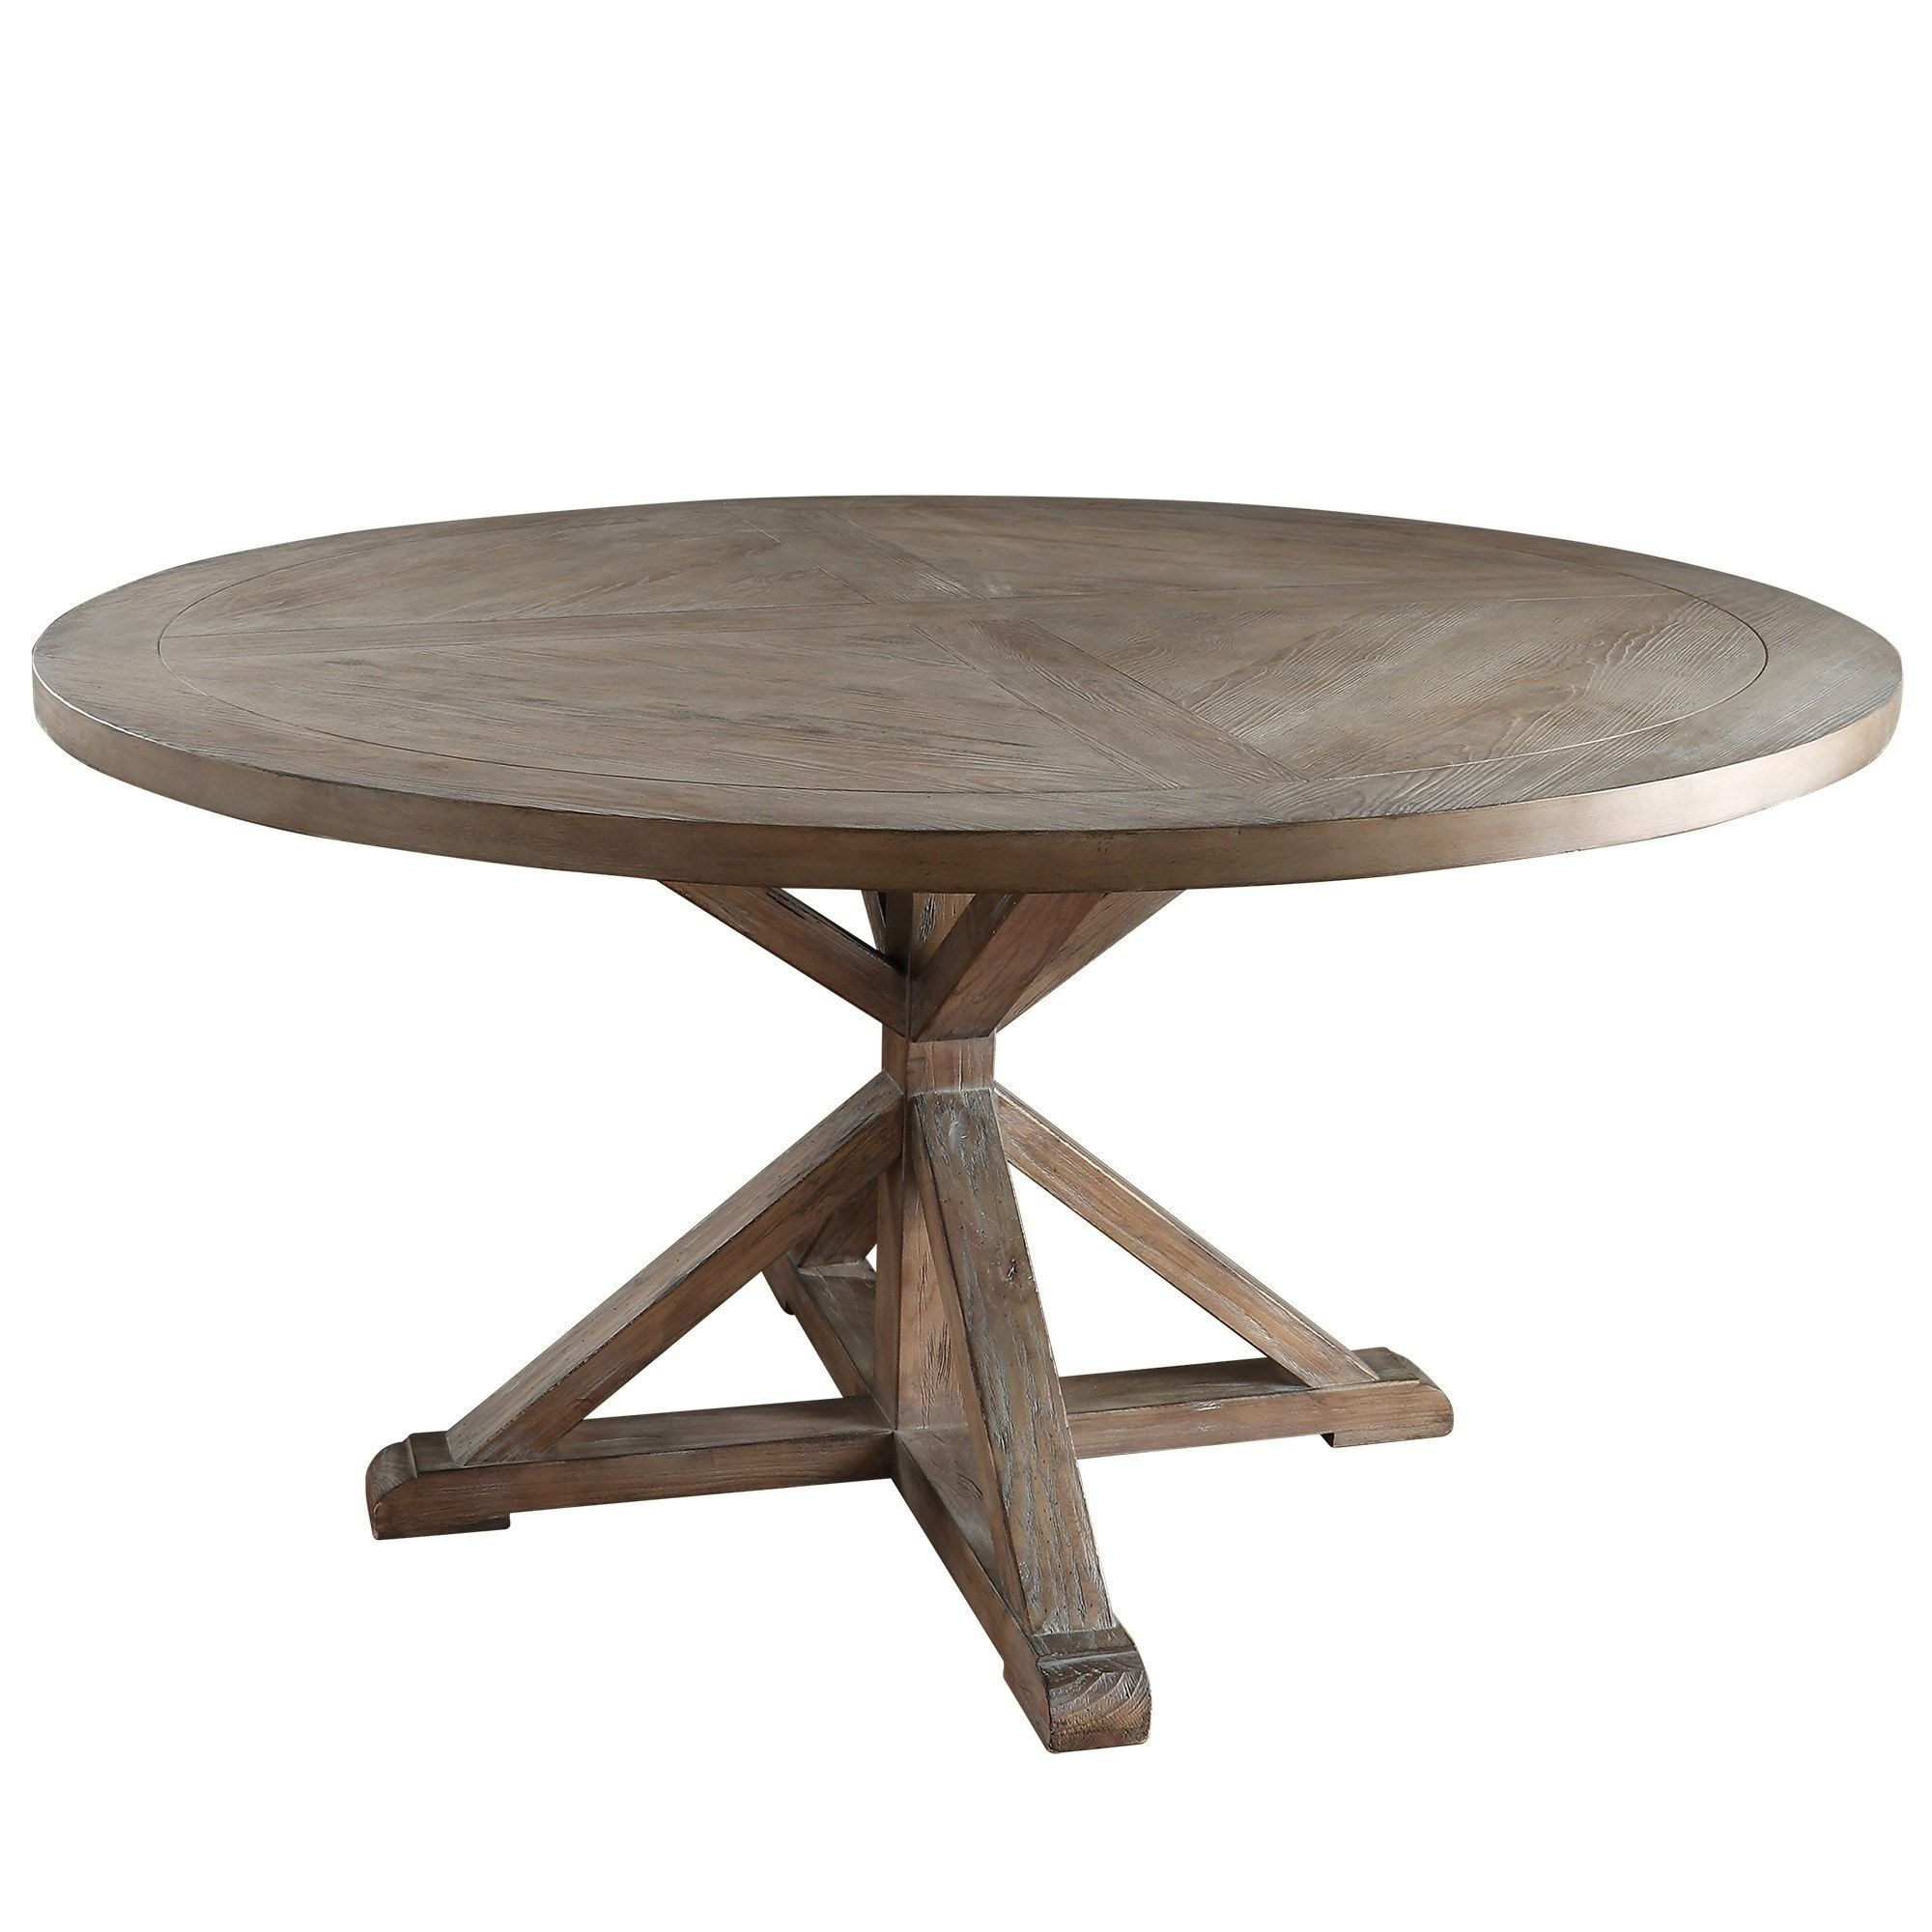 Benchwright Rustic X Base Round Pine Wood Dining Table Pertaining To Recent Benchwright Round Pedestal Dining Tables (View 9 of 25)